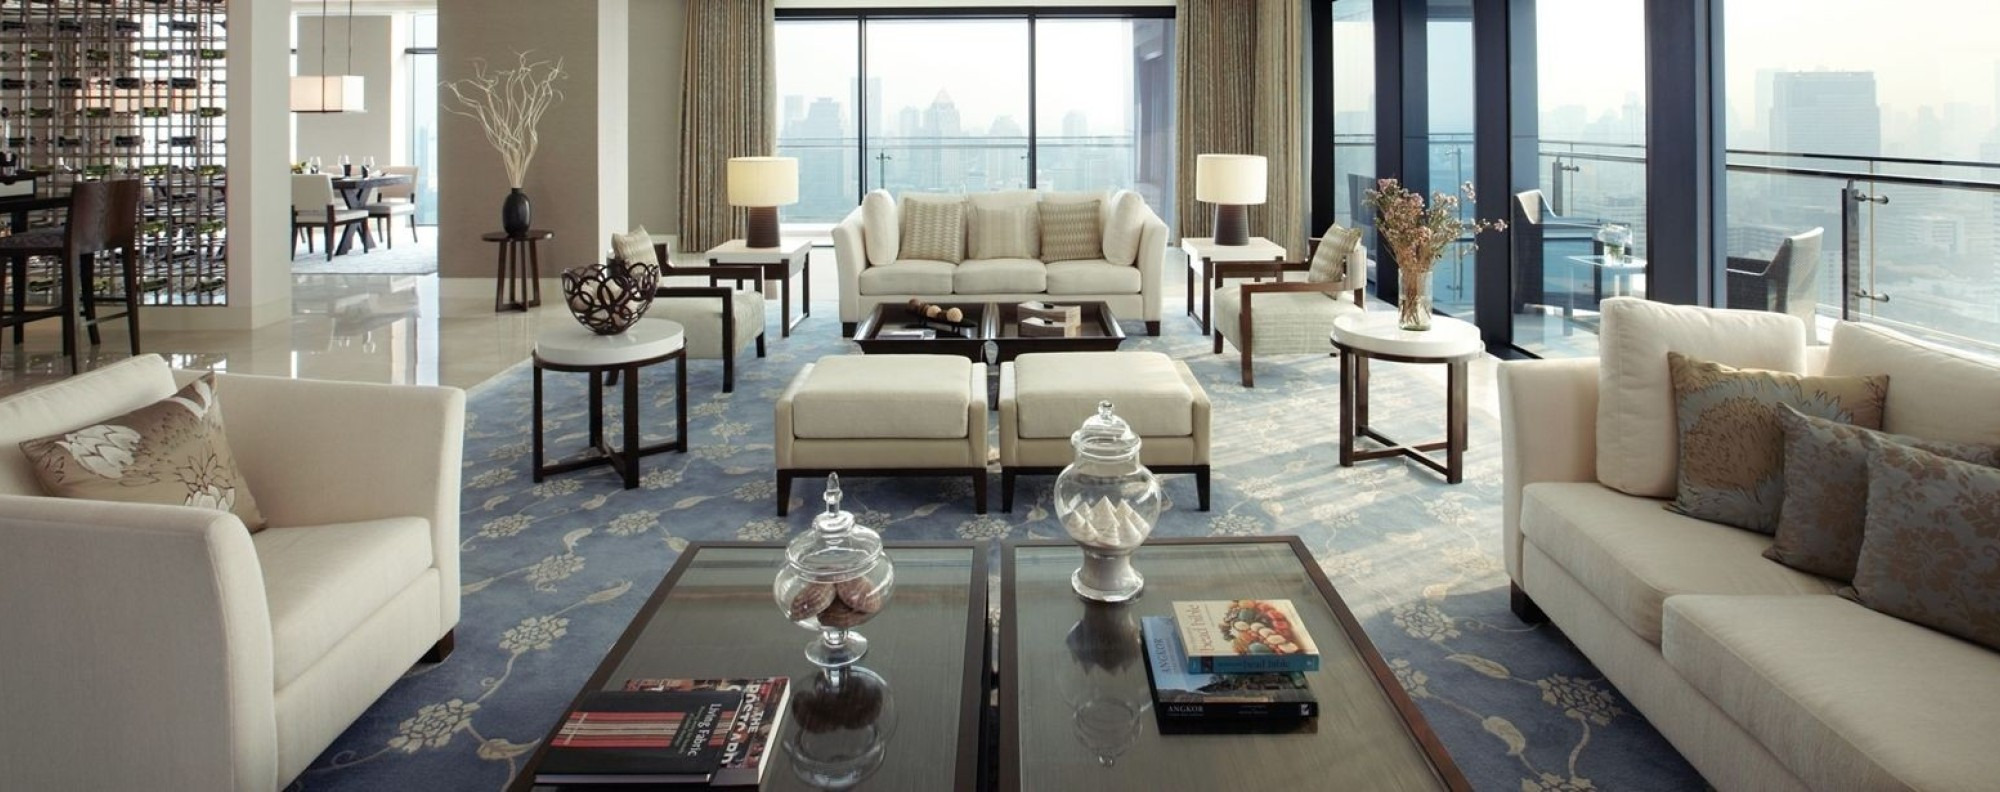 Residents at The St. Regis Bangkok can enjoy a 24-hour butler service.